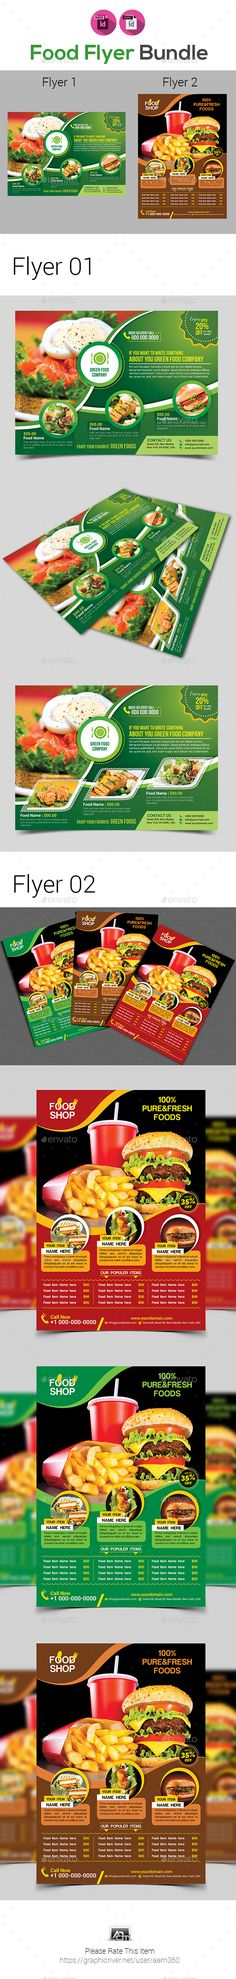 #Food Flyer Template Bundle - Restaurant Flyers Download here:    https://graphicriver.net/item/food-flyer-template-bundle/20179876?ref=suz_562geid